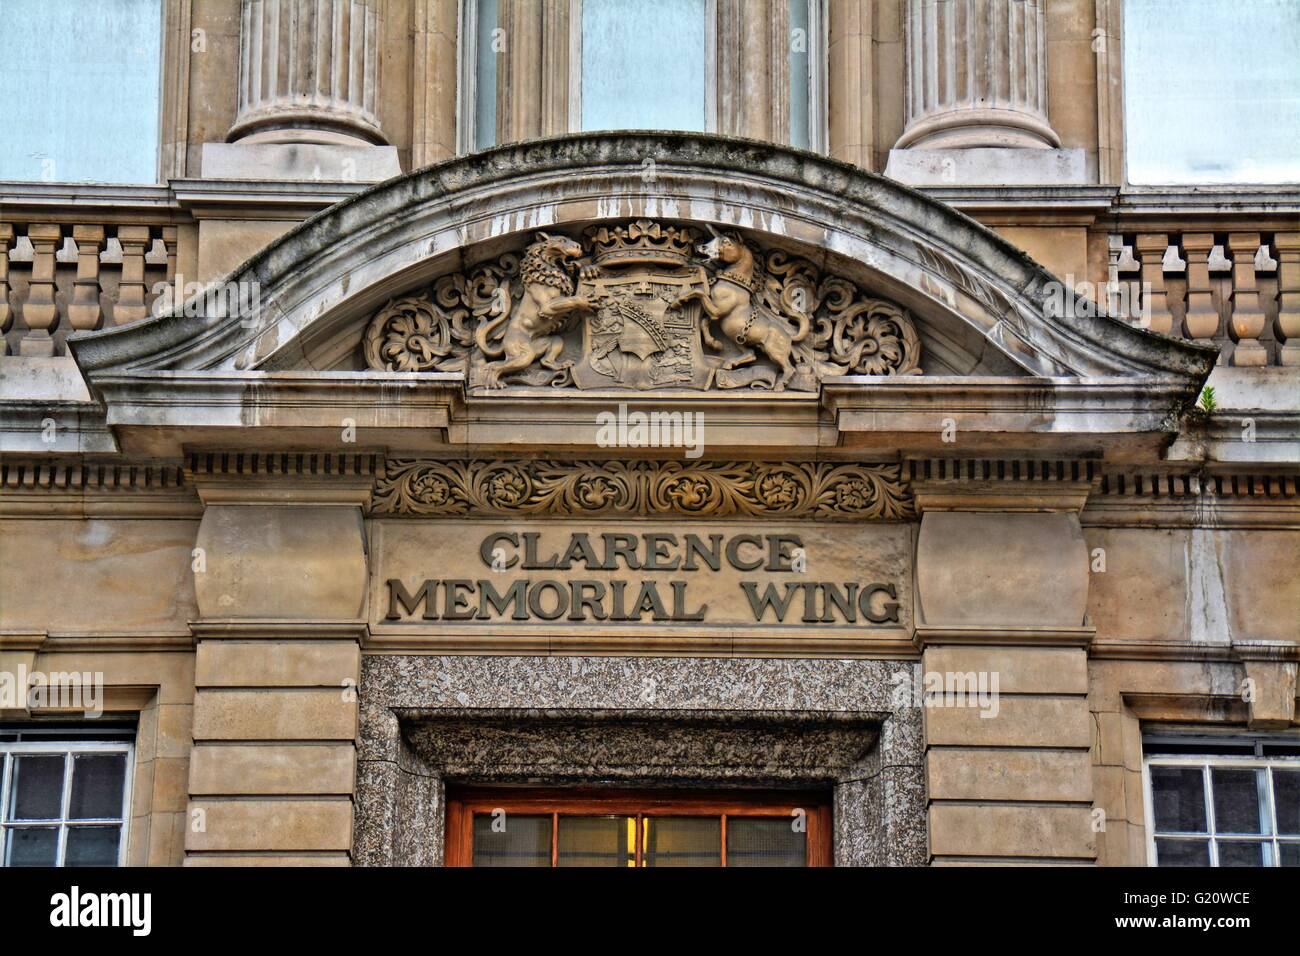 St Marys hospital, London, front view of the Clarence memorial wing.  St Mary's Hospital is the major acute - Stock Image